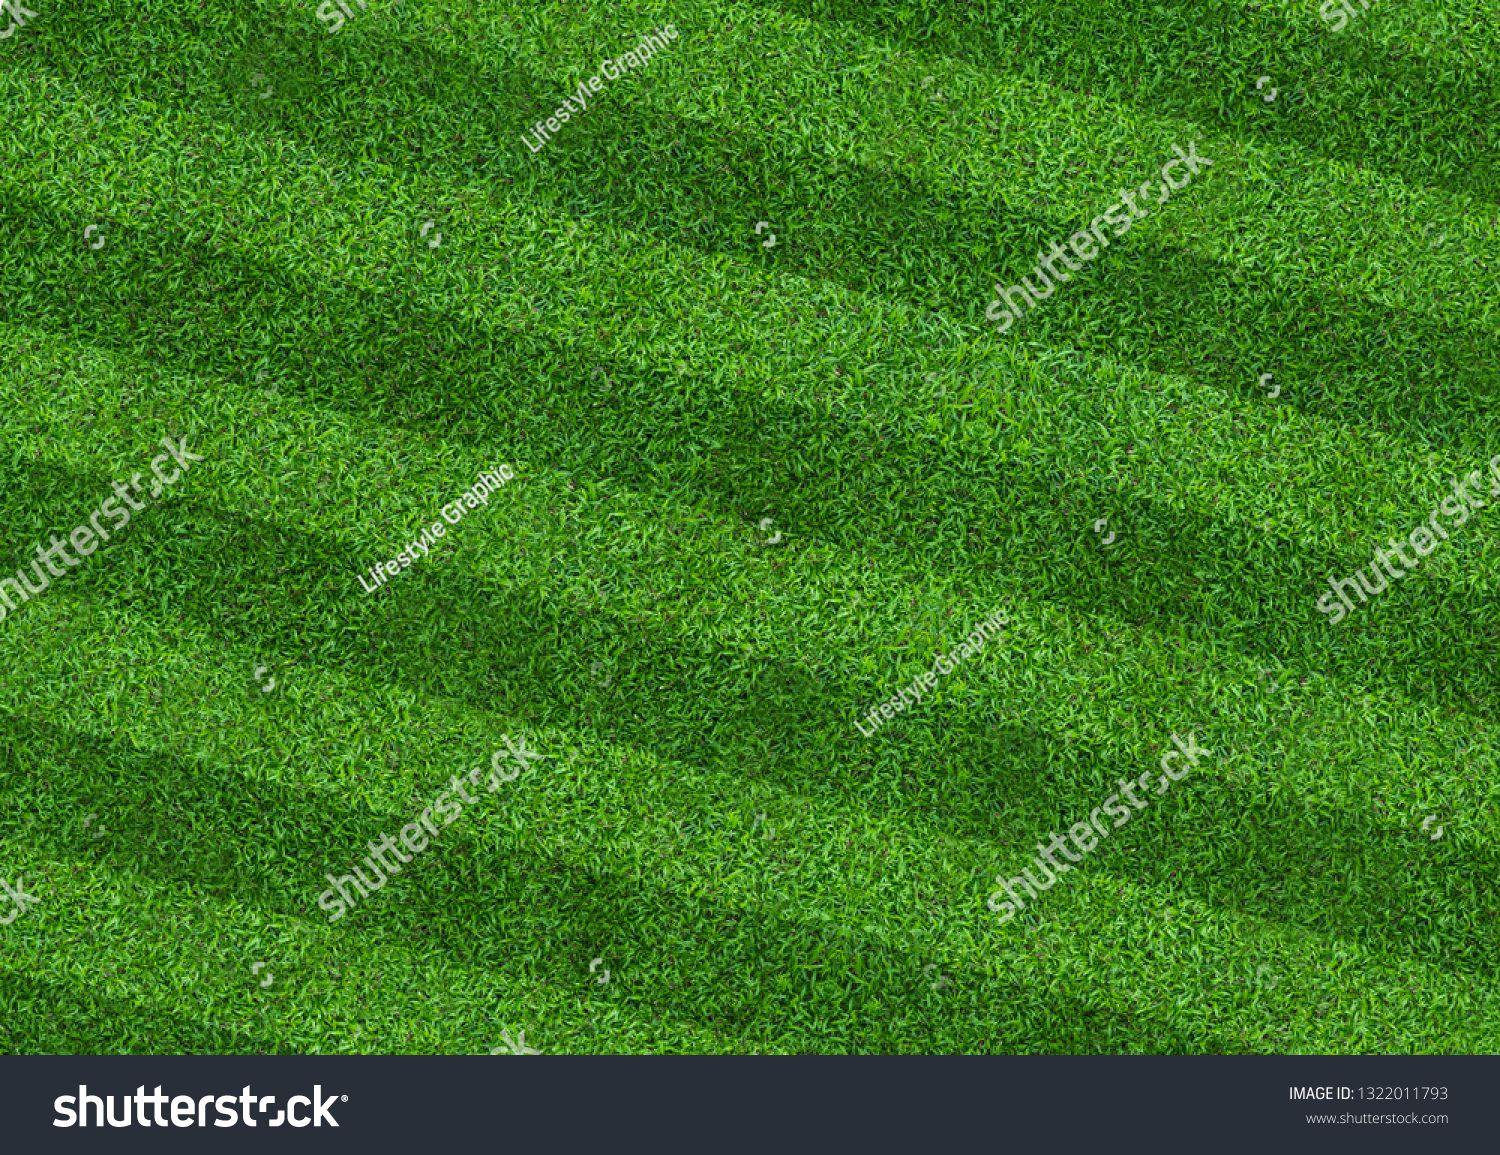 Green Grass Field Background For Soccer And Football Sports Green Lawn Pattern And Texture Background Close Up Image Ad A Grass Field Green Grass Soccer